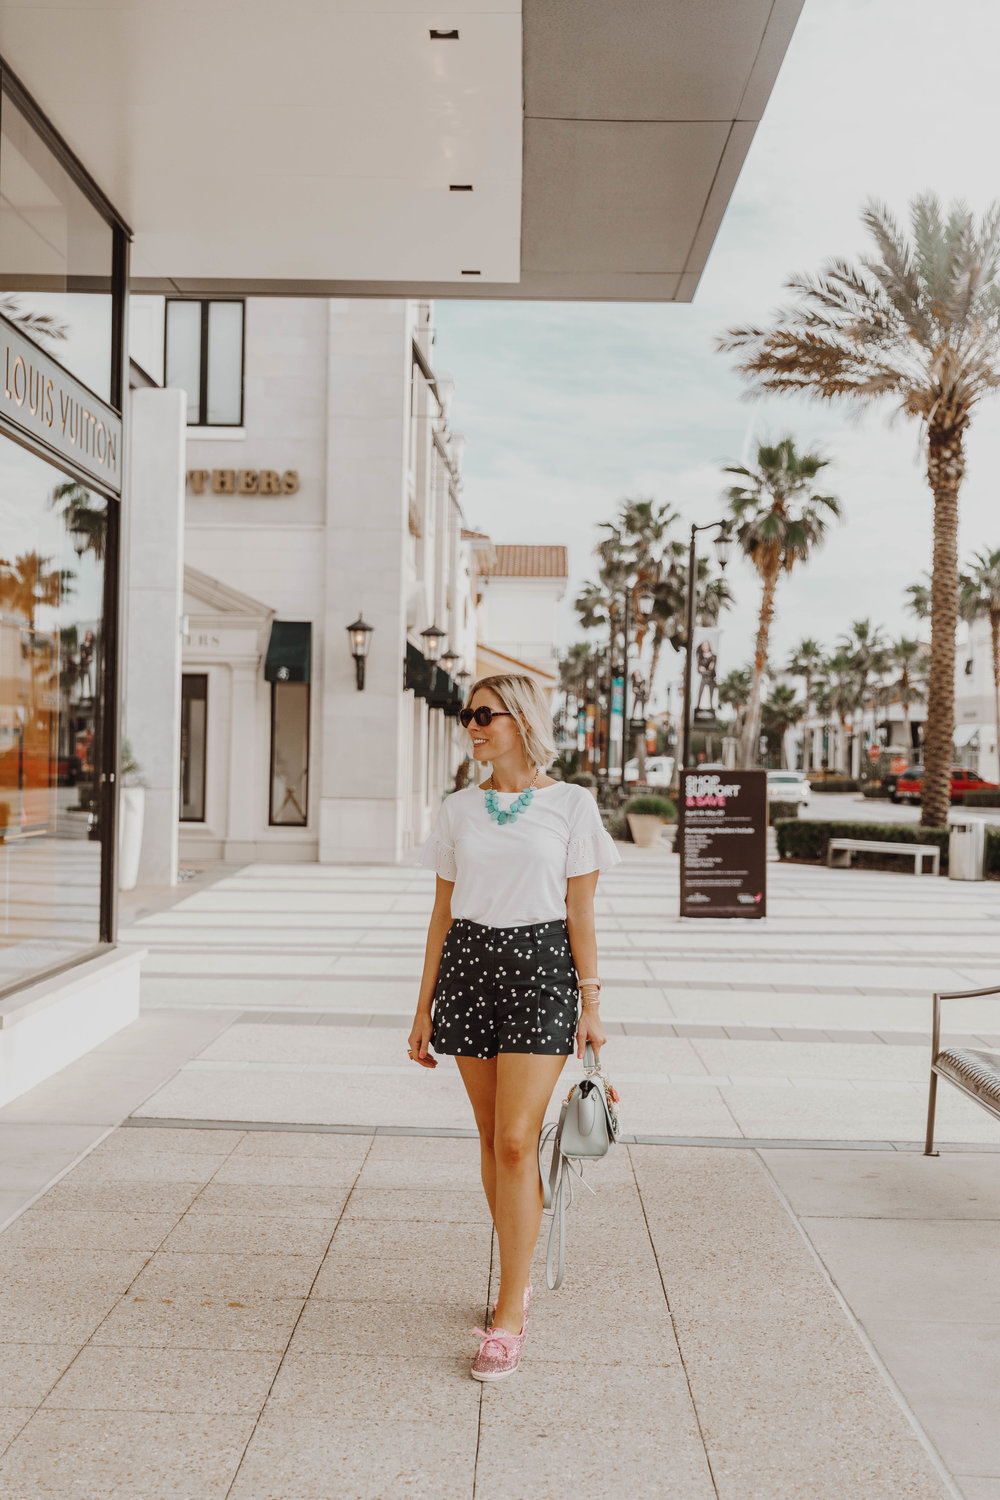 Stephanie Mack Kearney, writer of the Borrowed Babes Fashion Blog and Navy Wife shopping Military Appreciation Month at St Johns Town Center in Jacksonville, FL – A Simon Malls Property